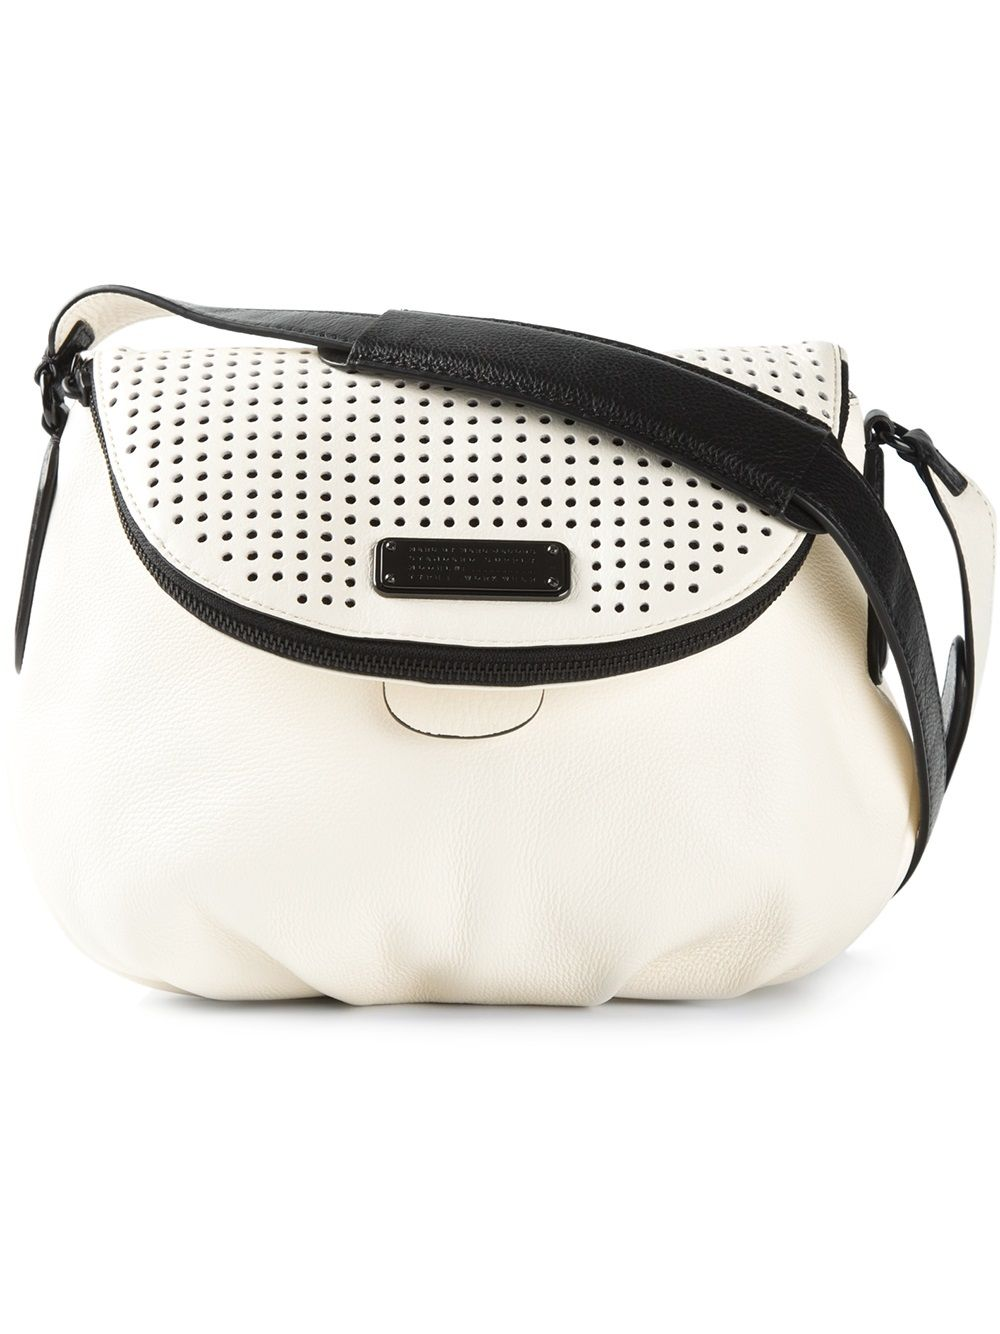 Marc by Marc Jacobs Q Natasha Perforated Crossbody Bag